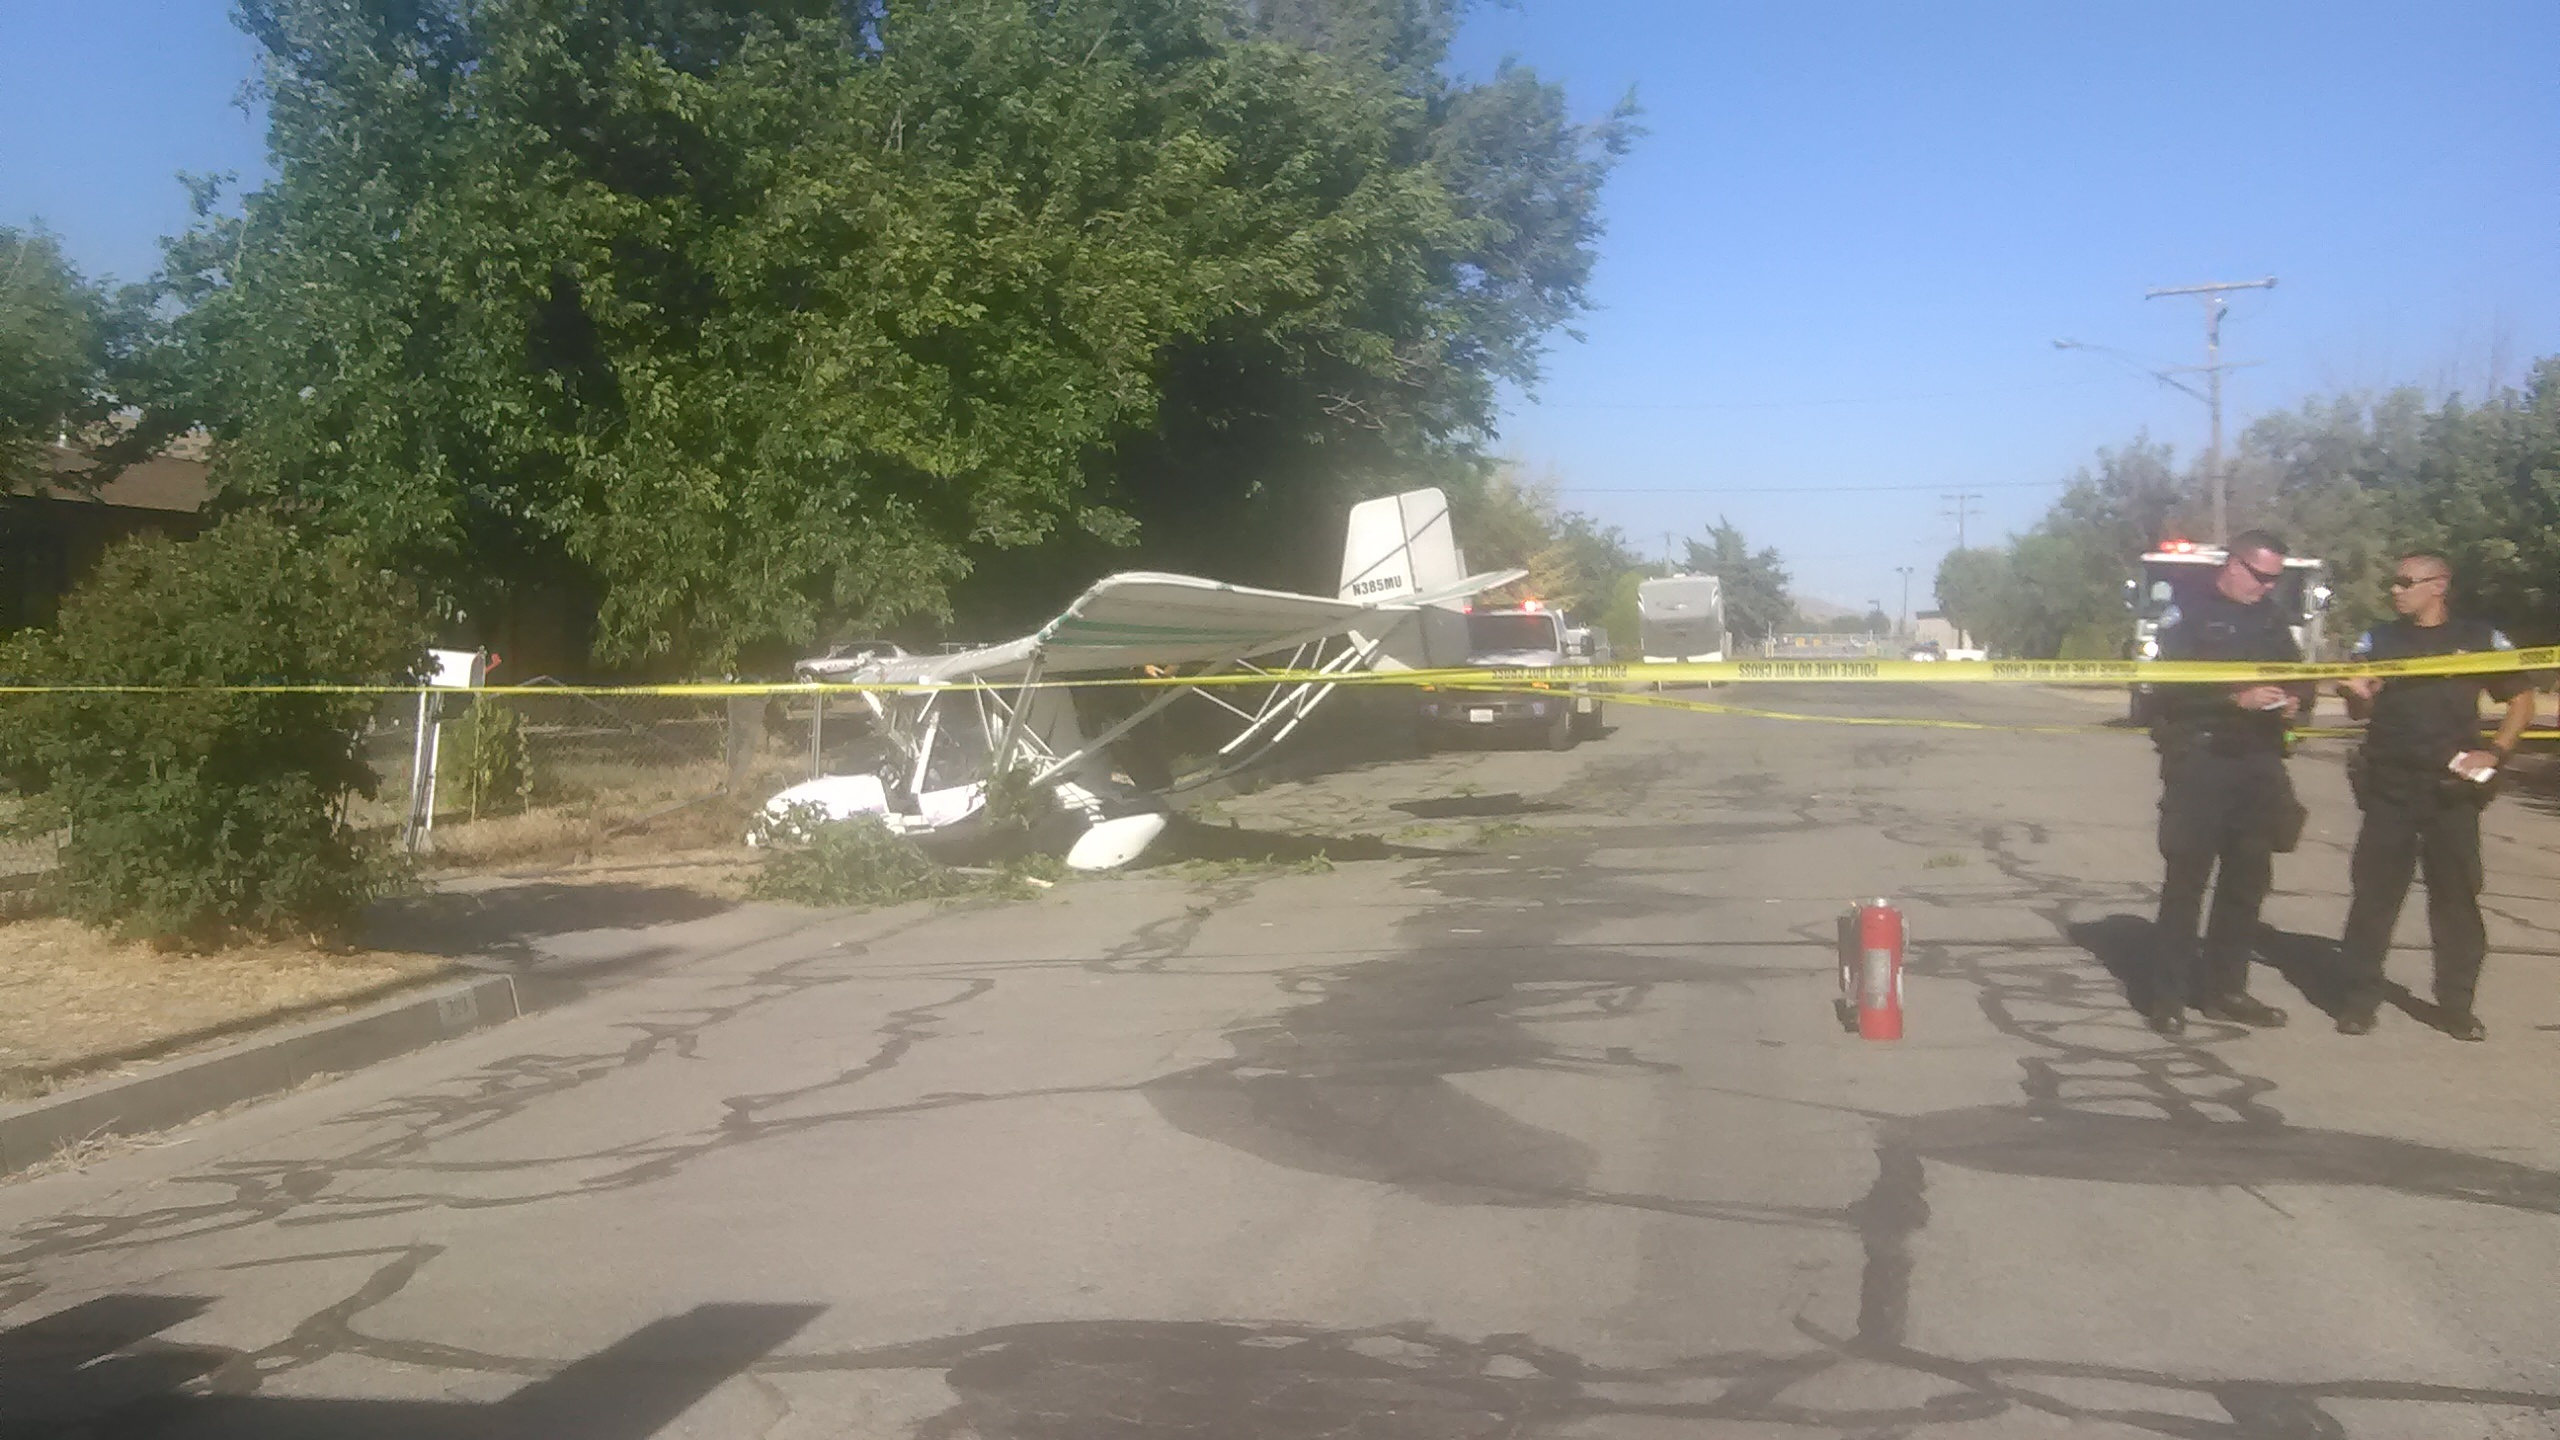 A photo provided by Hayley Pleis on Thursday, June 29, 2017, shows the aftermath of a small plane crash near the airport in Tehachapi, Calif.